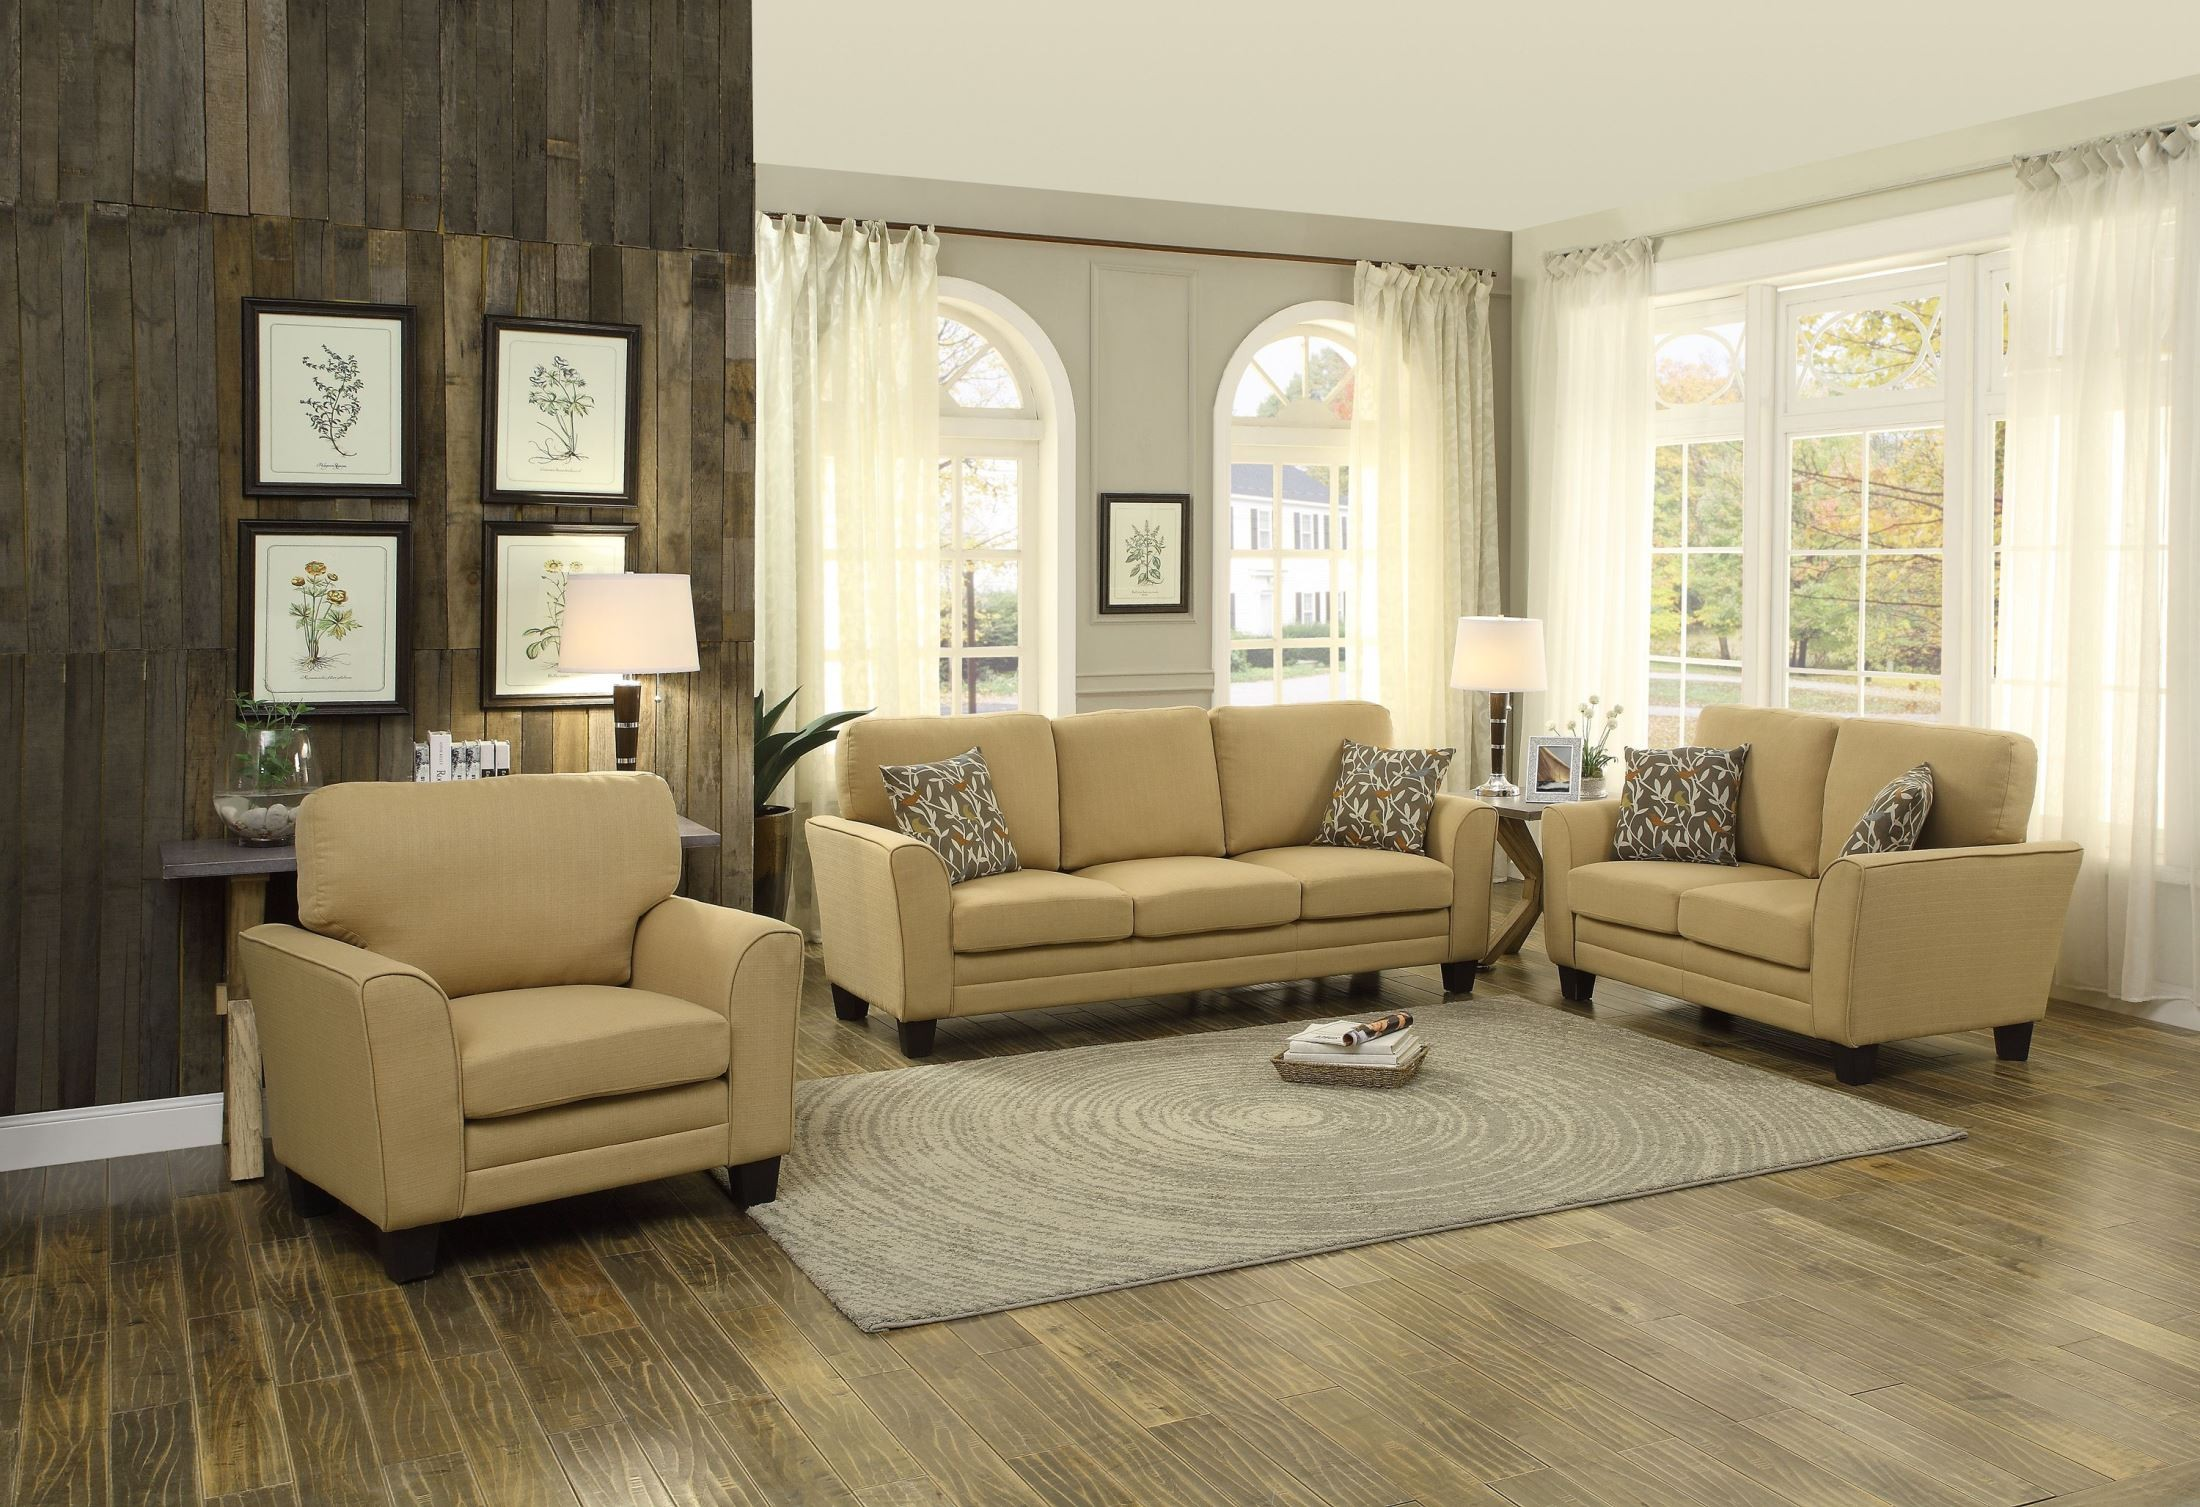 Adair yellow living room set from homelegance 8413yw 3 coleman